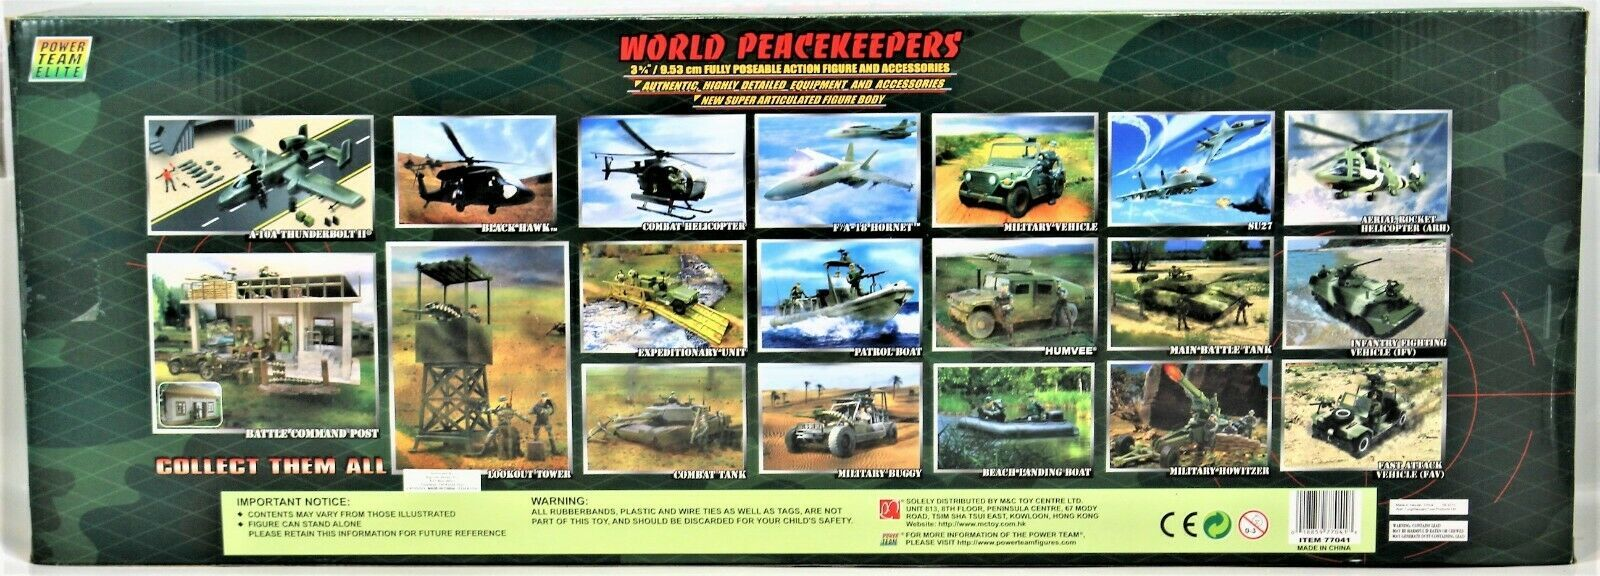 World Peacekeepers Power Team Elite Aerial Rocket Helicopter (ARH) 1:18 Scale image 9